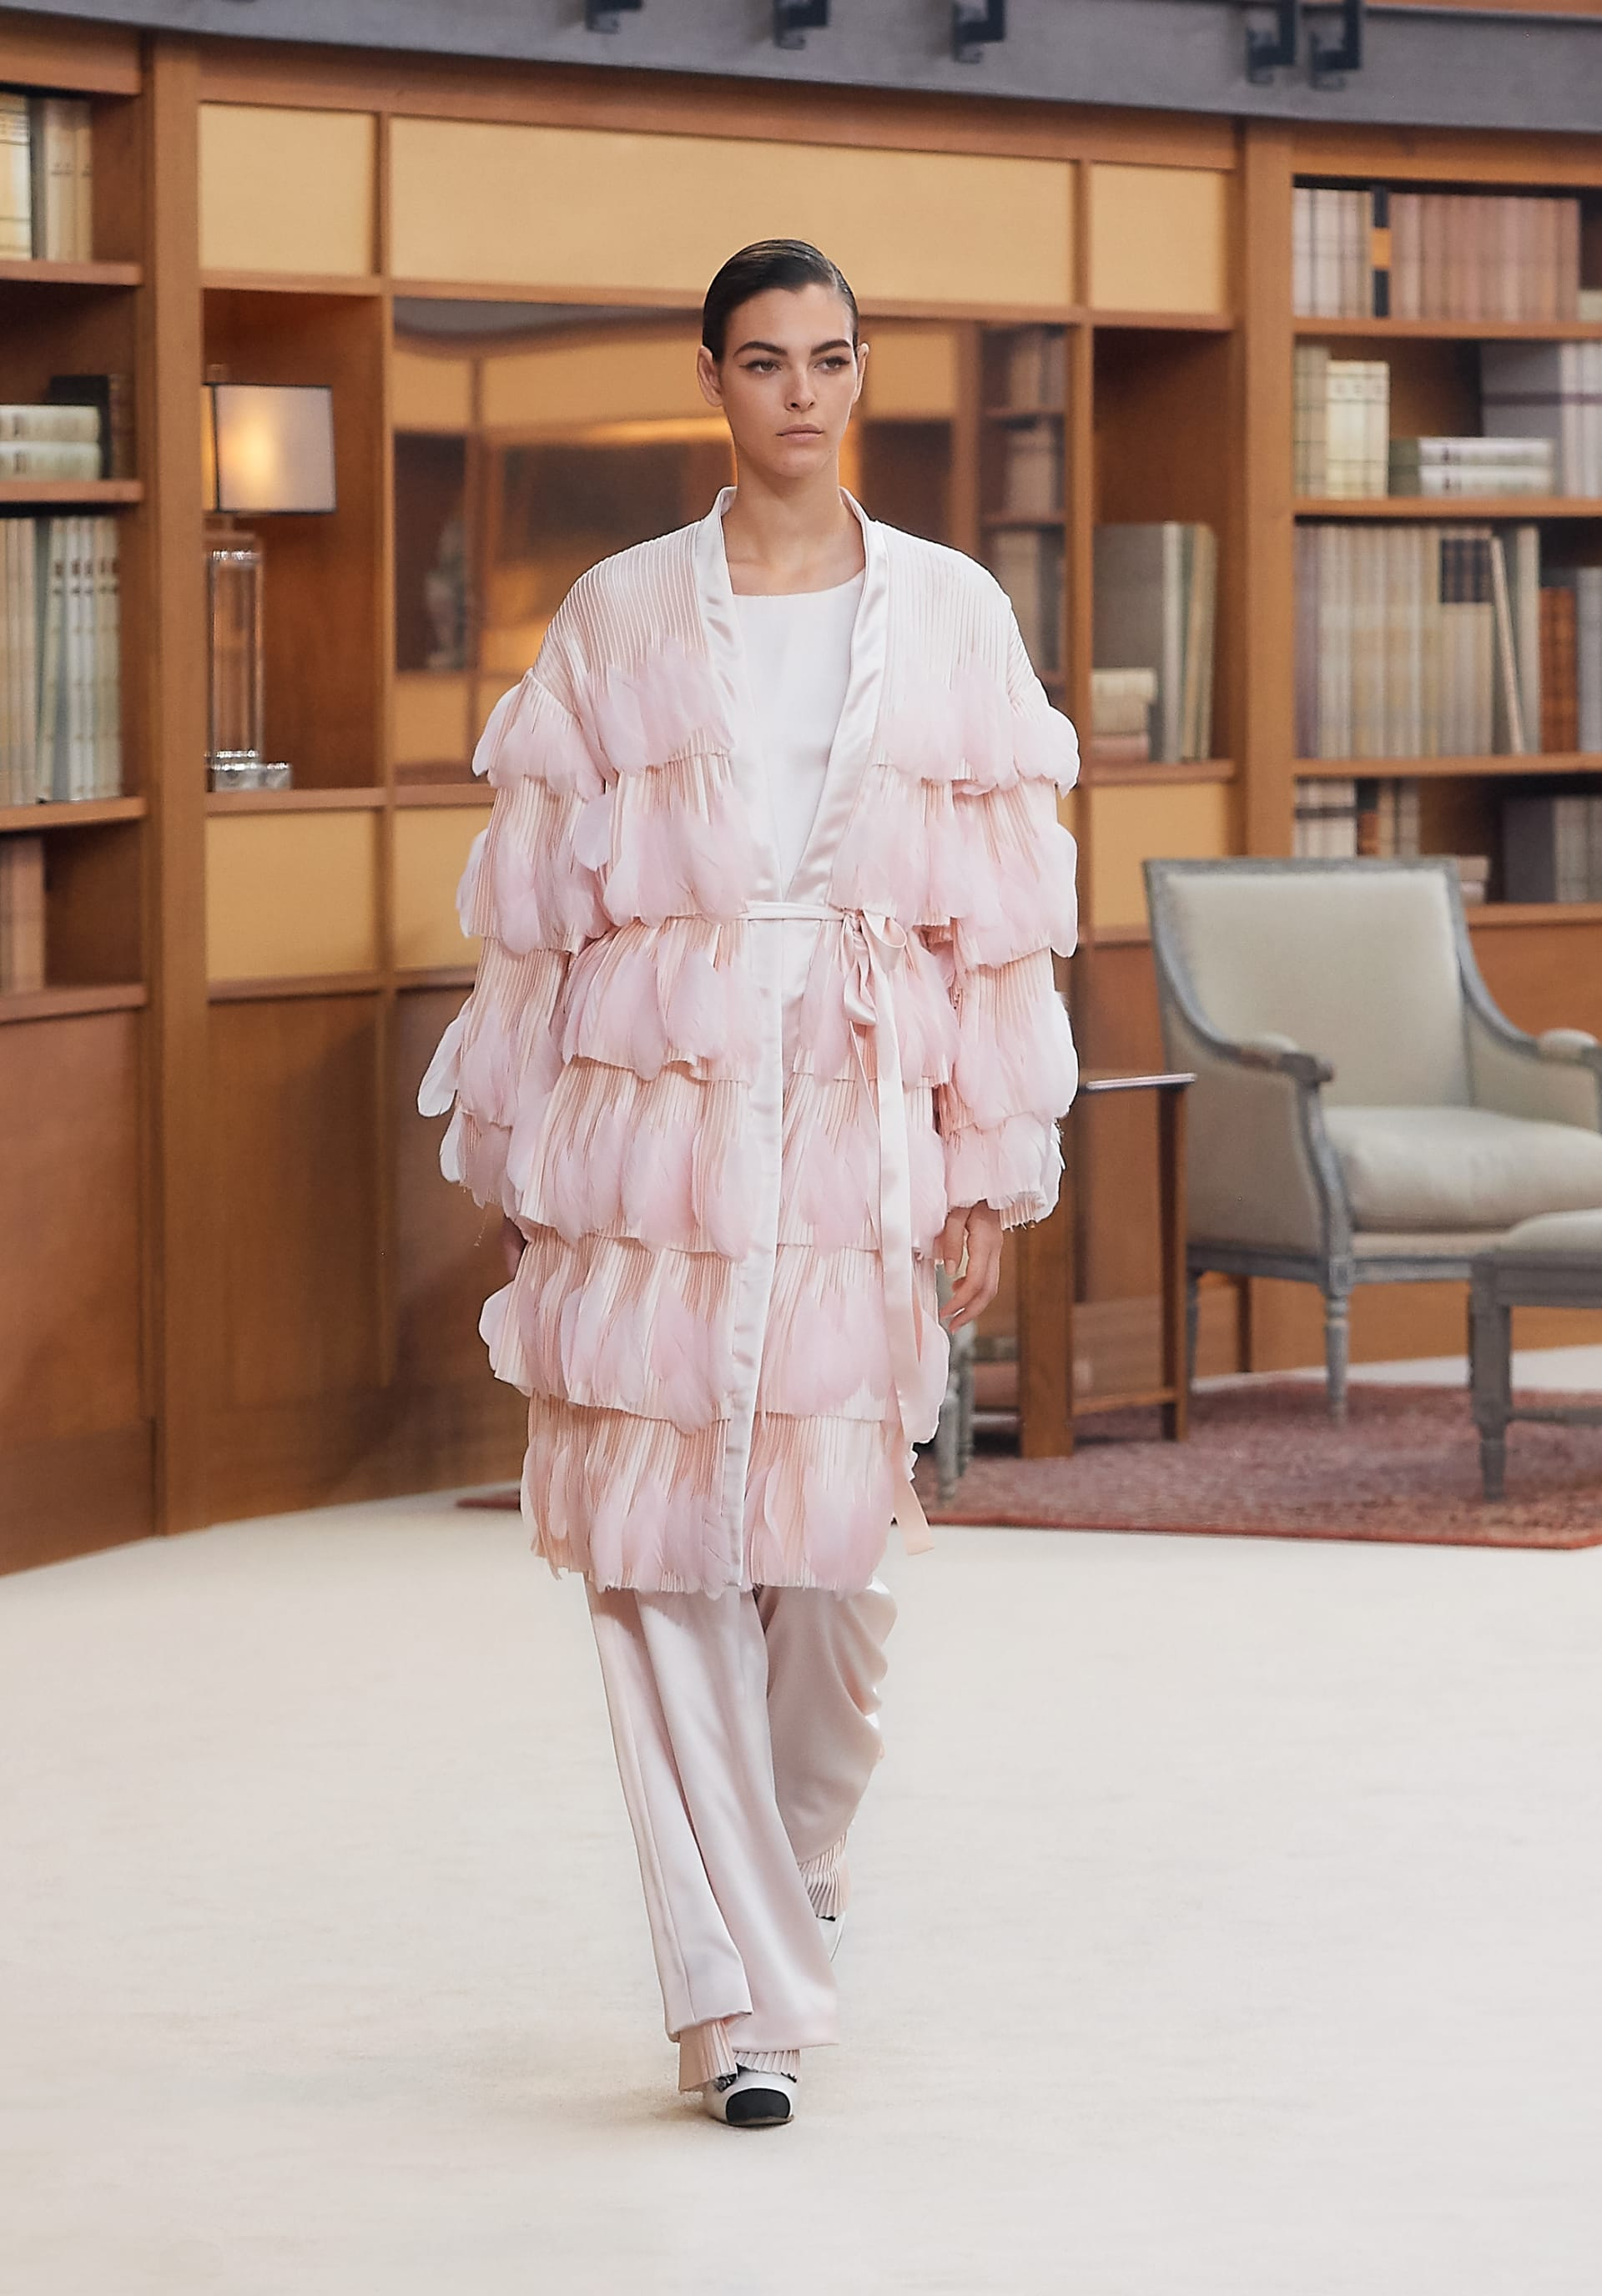 View 1 - Look 70 - Fall-Winter 2019/20 Haute-Couture - see full sized version